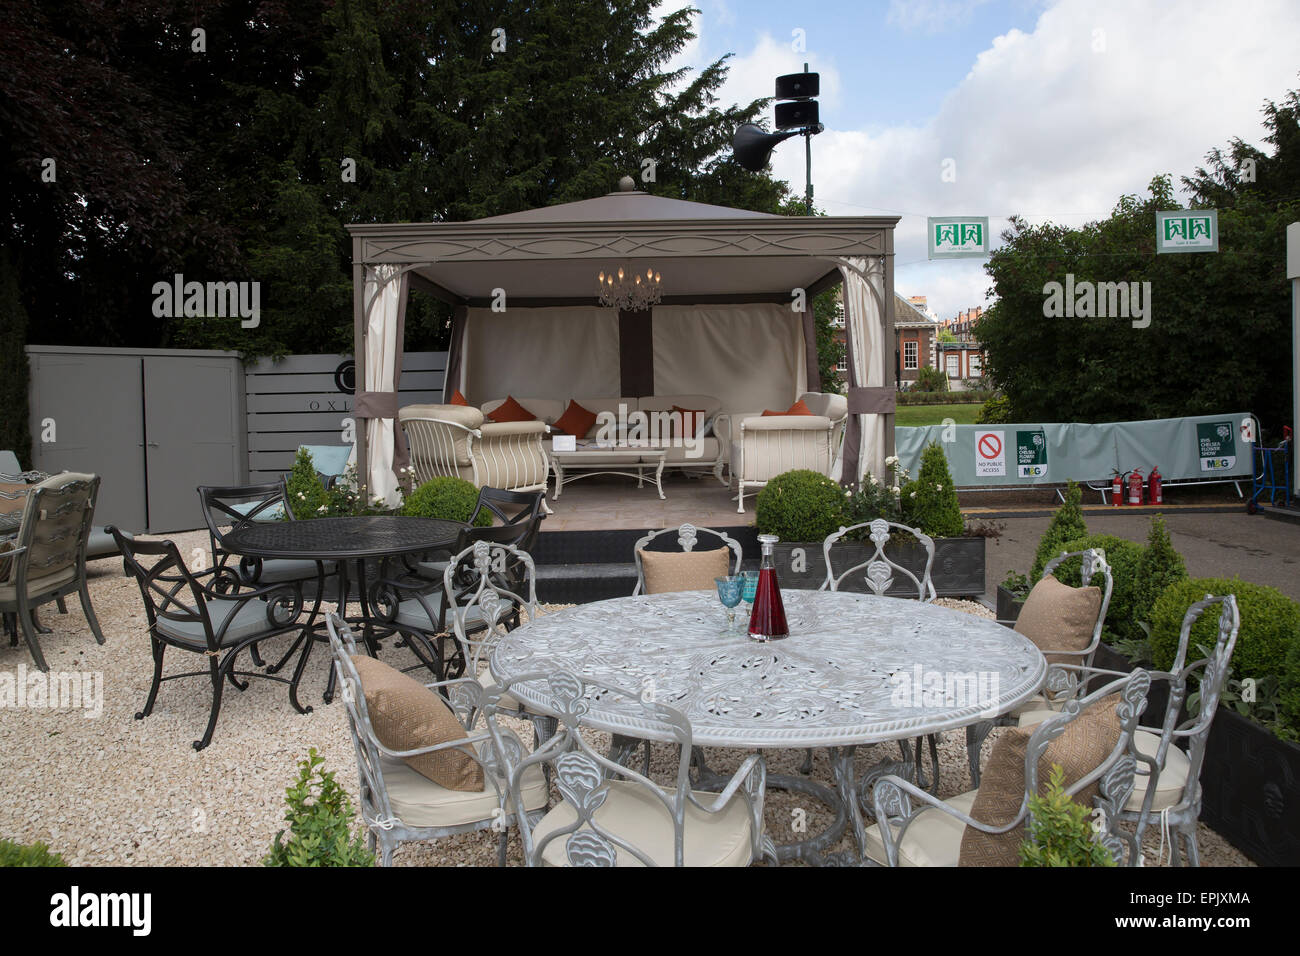 Chelsea, London, UK. 19th May, 2015. Garden Furniture For Sale At Chelsea  Flower Show 2015. Credit: Keith Larby/Alamy Live News